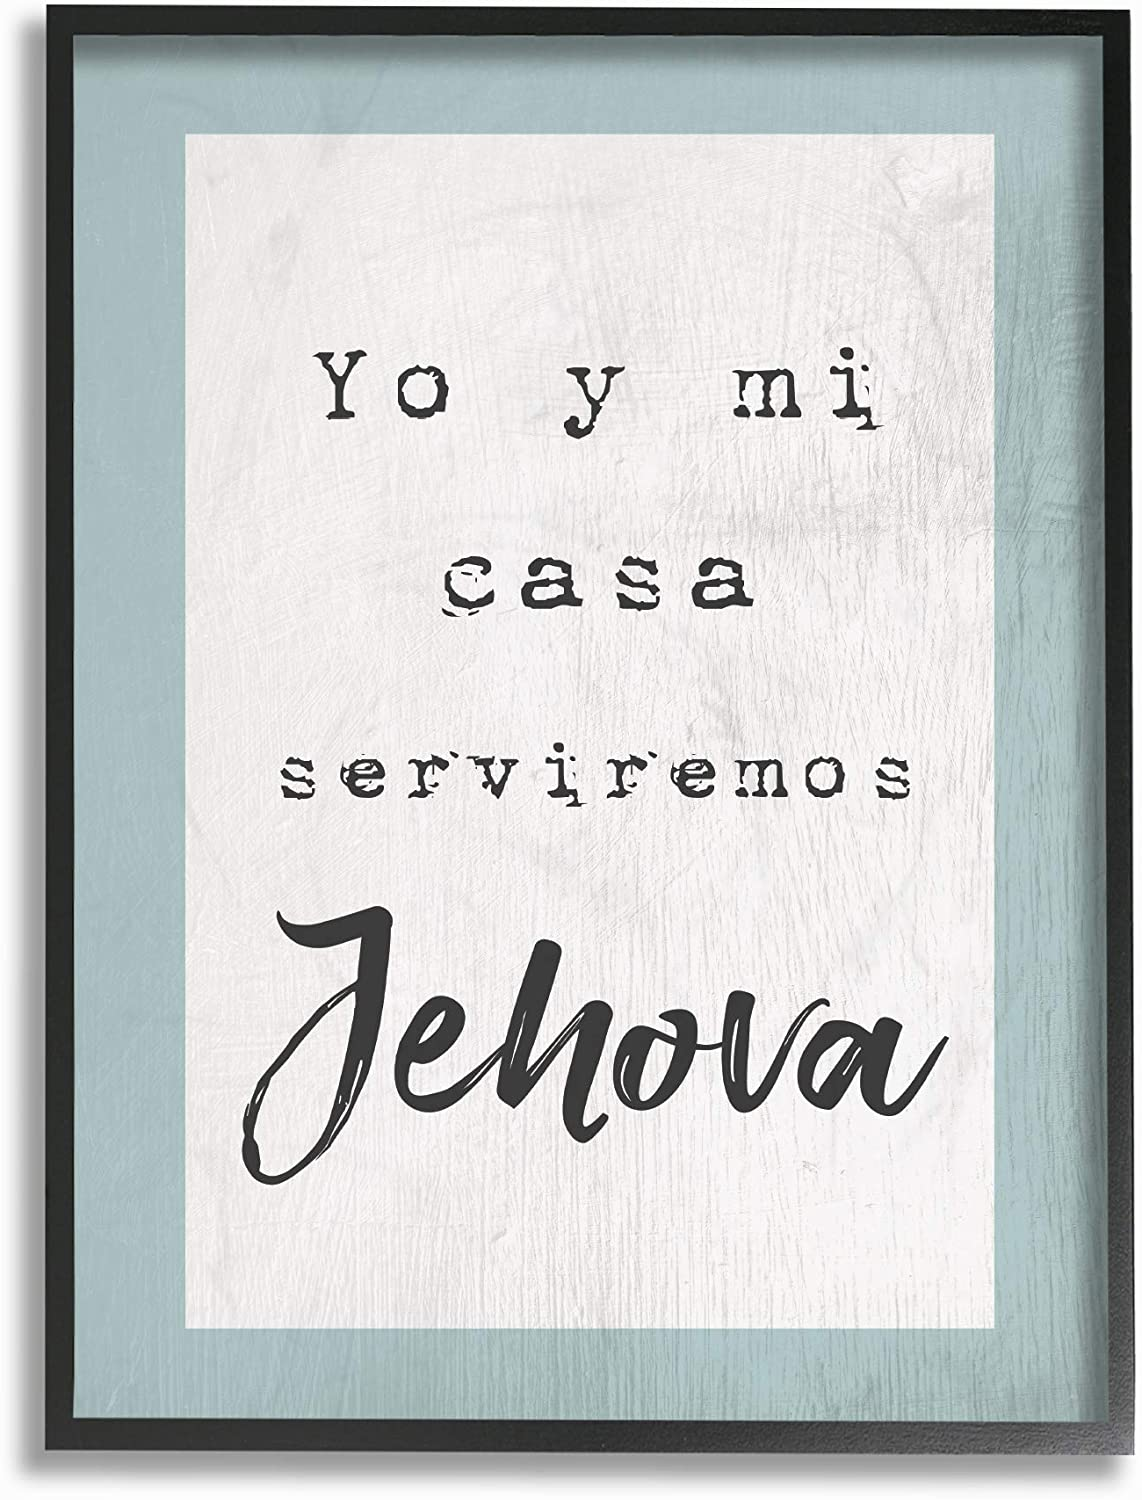 Stupell Industries Home bluee and White Serviremos Jehova Spanish Typography Framed Giclee Texturized Art, Multi-color